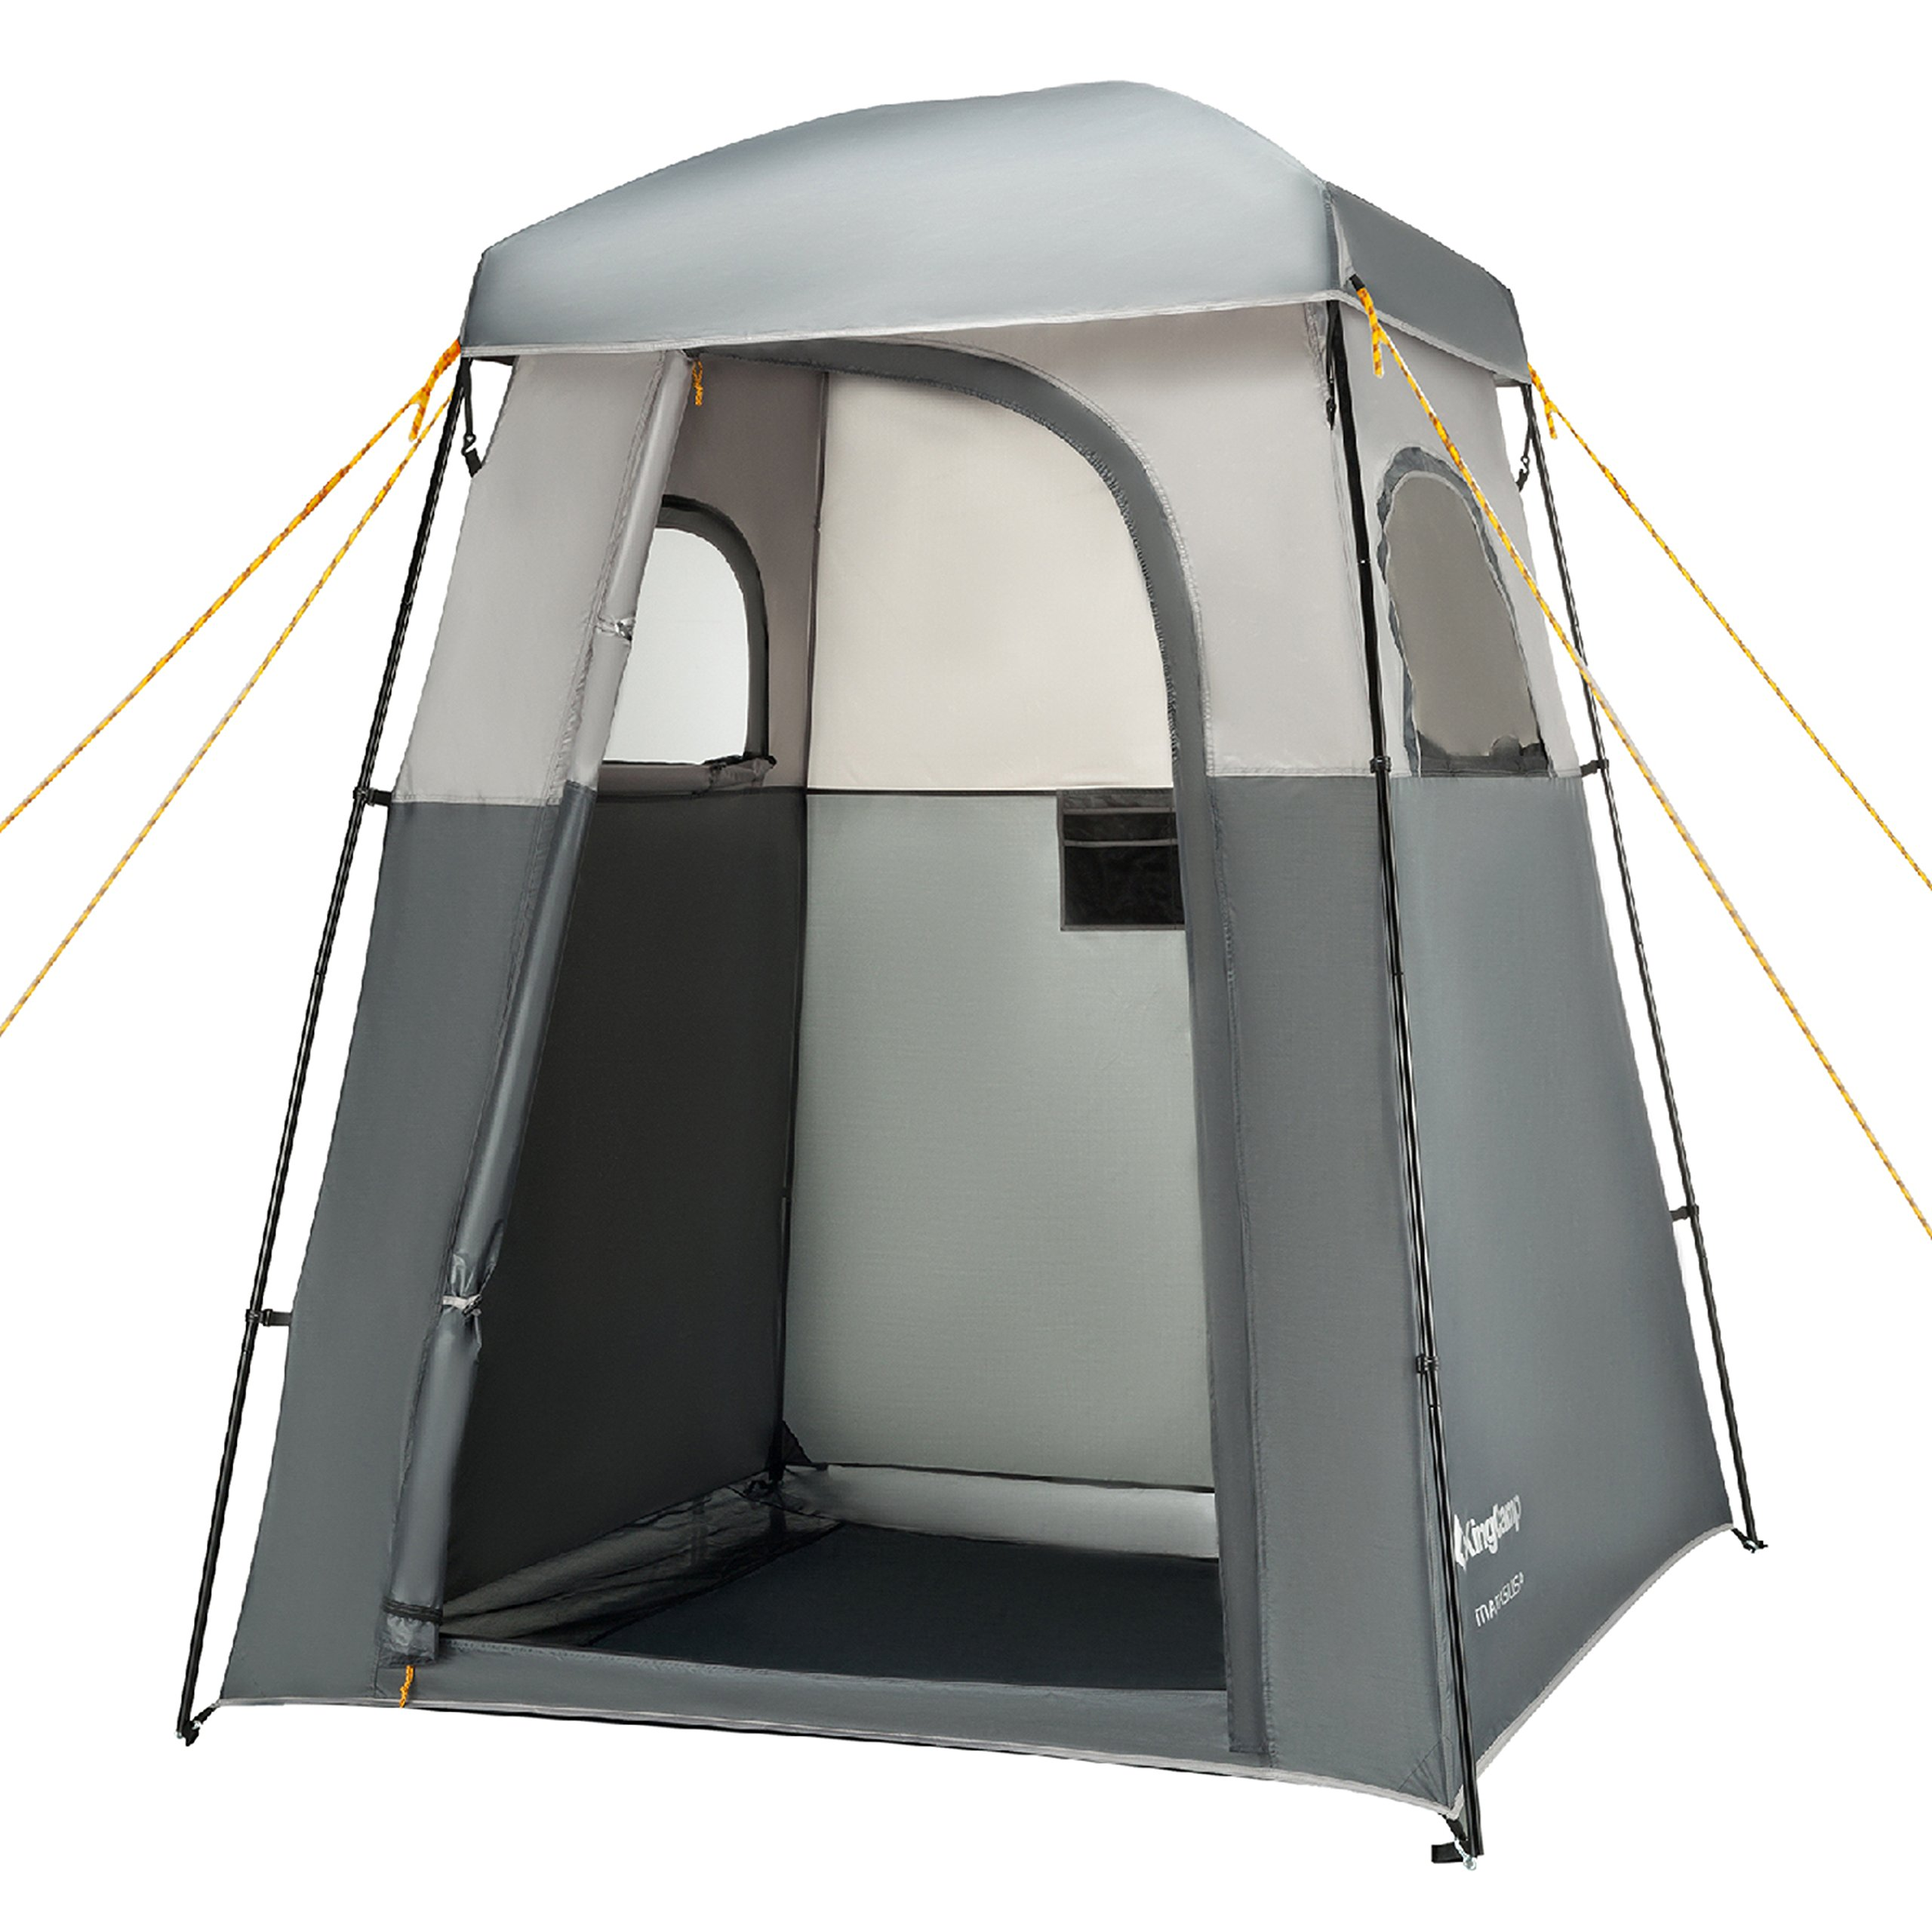 Camping Shower Tent Portable Bath Shelter Outdoor Bathroom Changing - Camping bathroom tent